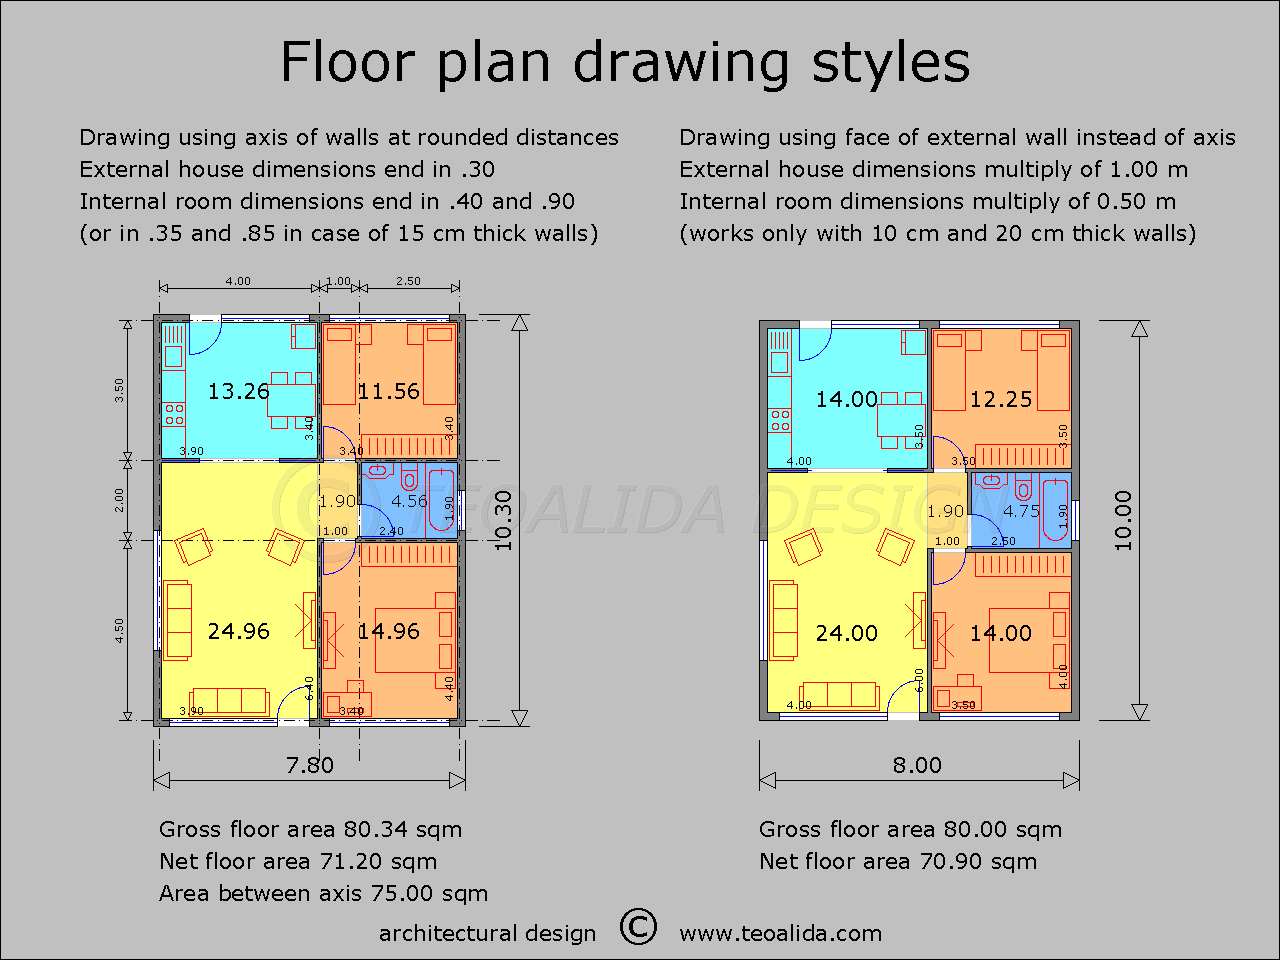 Floor plan drawing style